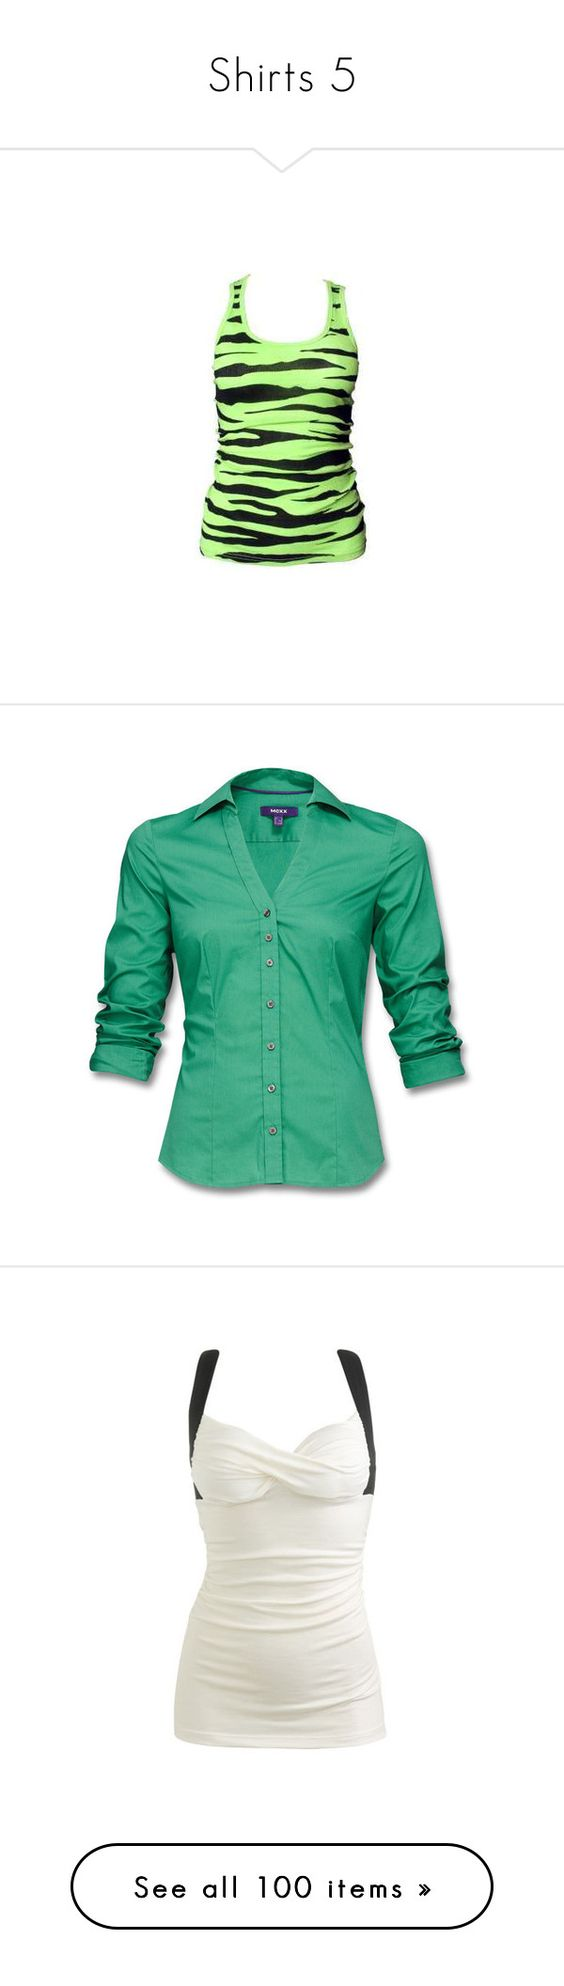 """""""Shirts 5"""" by snowwolf422 ❤ liked on Polyvore featuring tops, shirts, tank tops, tanks, 10. tops., green tank top, green top, green tank, shirts & tops and green shirt"""